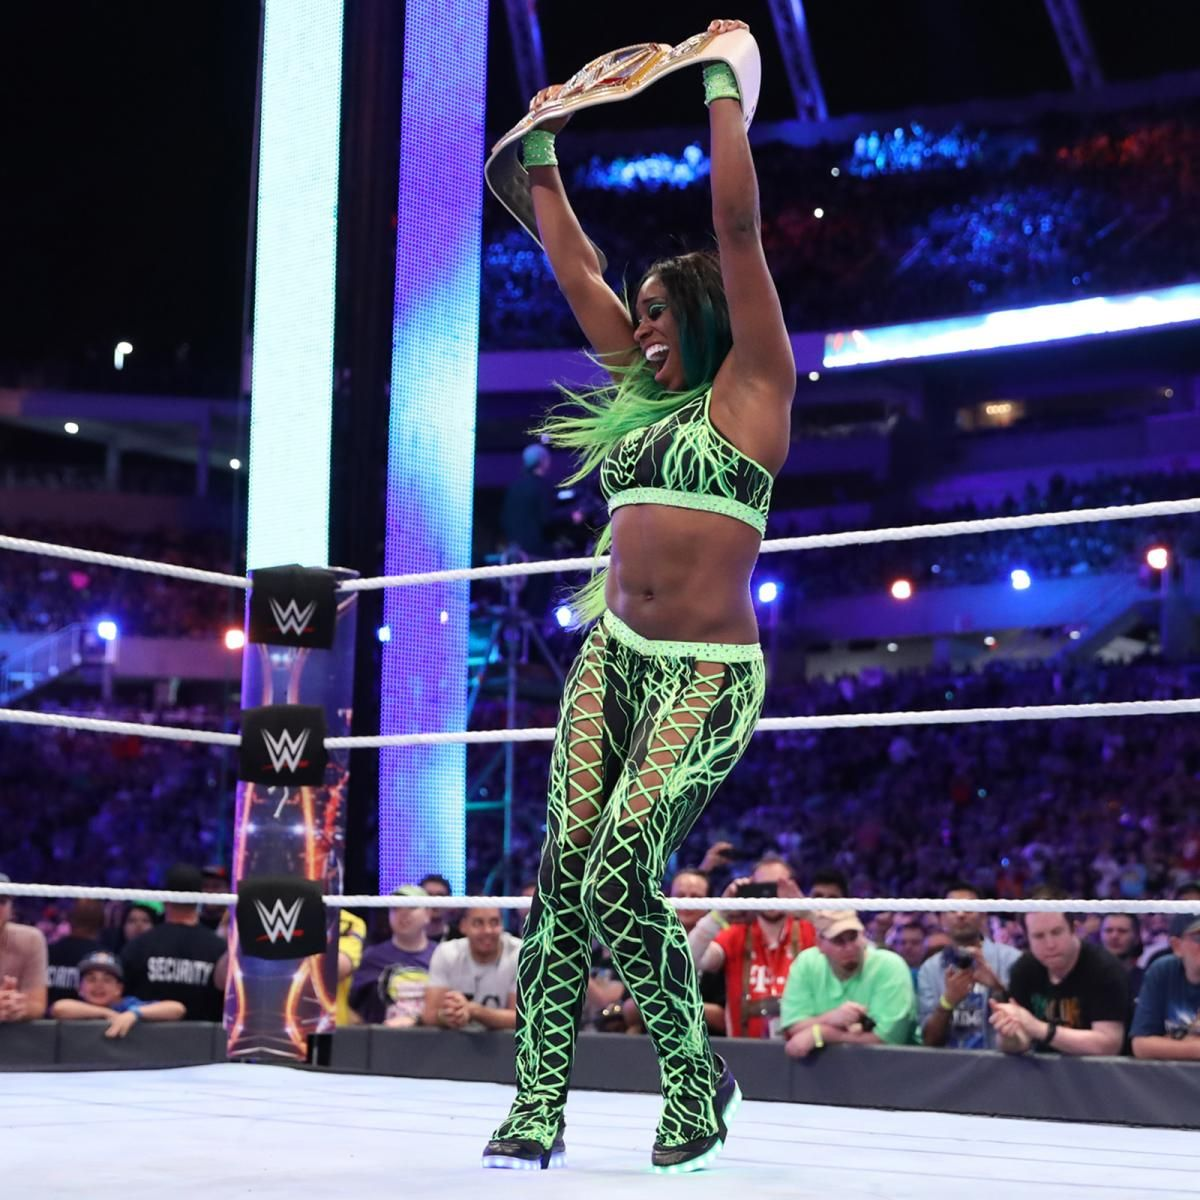 Naomi celebrates with the Smackdown Women's Championship at Wrestlemania 33